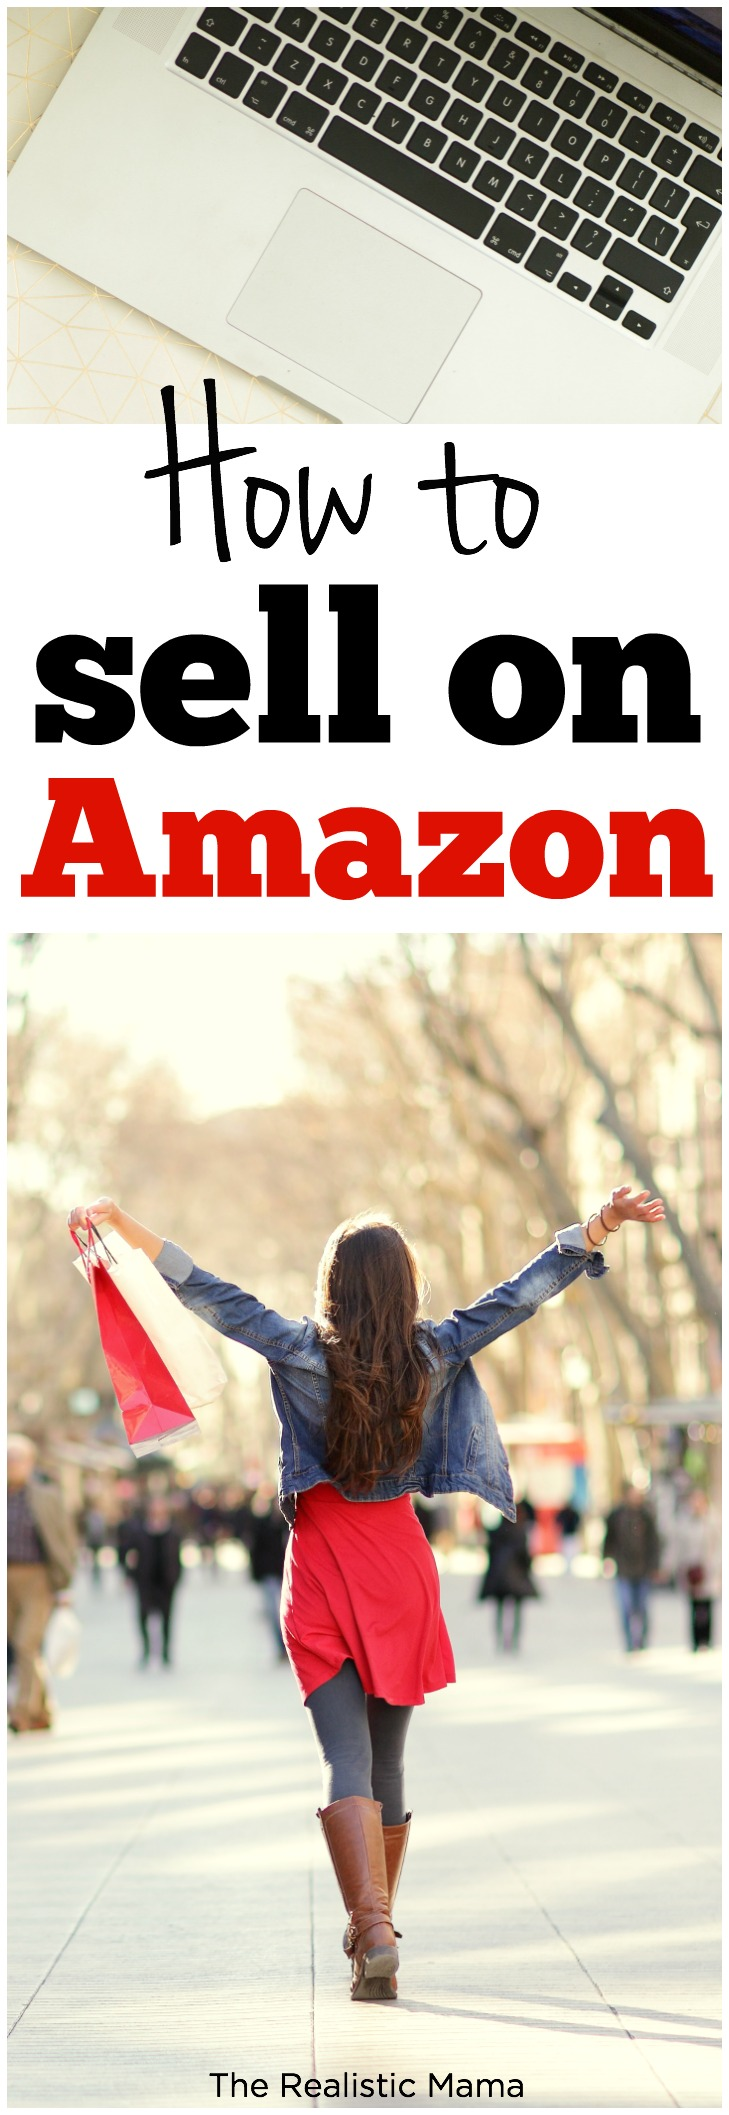 Everything you ever wanted to know about how to sell on Amazon and work from home!